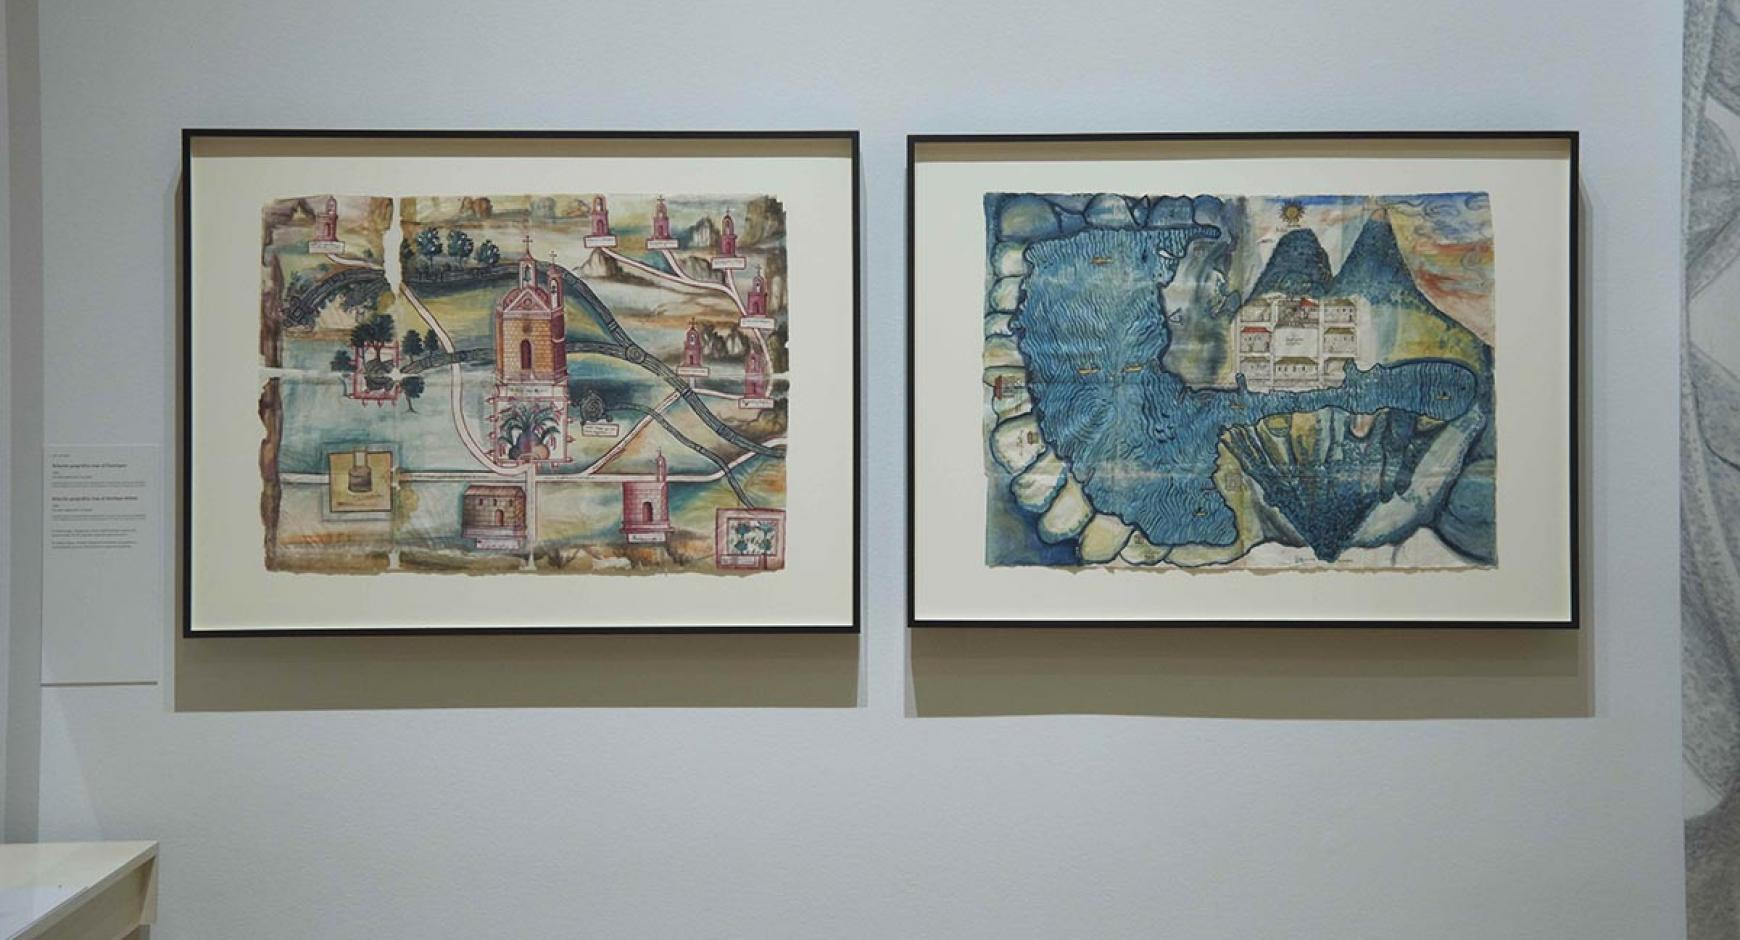 Guaxtepec (left) and Atitlan maps at the Huntington.